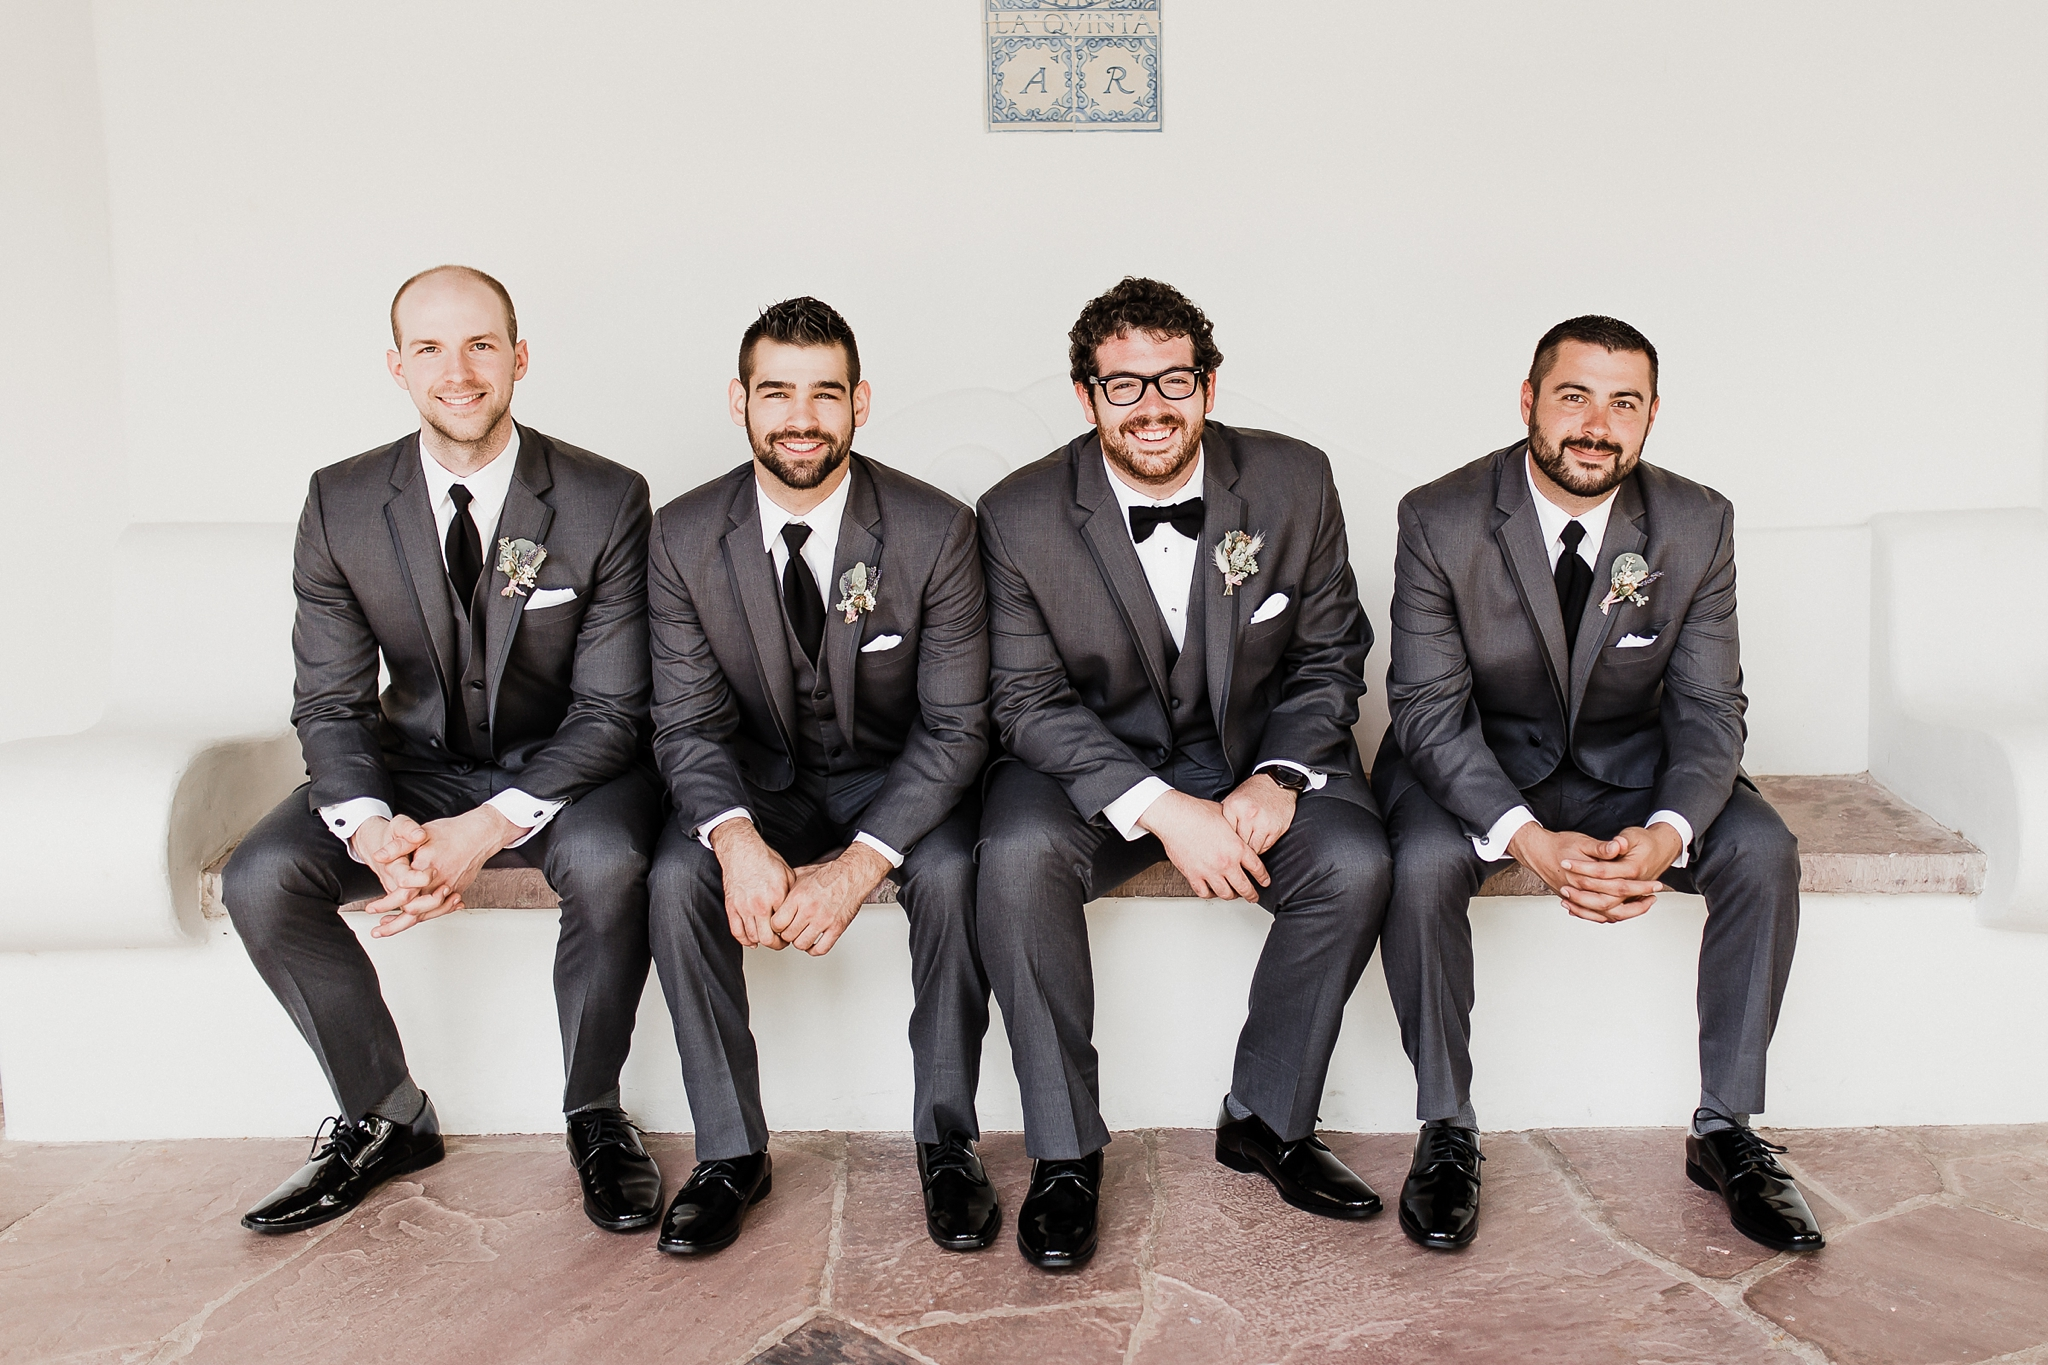 Alicia+lucia+photography+-+albuquerque+wedding+photographer+-+santa+fe+wedding+photography+-+new+mexico+wedding+photographer+-+new+mexico+wedding+-+summer+wedding+-+los+poblanos+wedding+-+albuquerque+wedding_0054.jpg